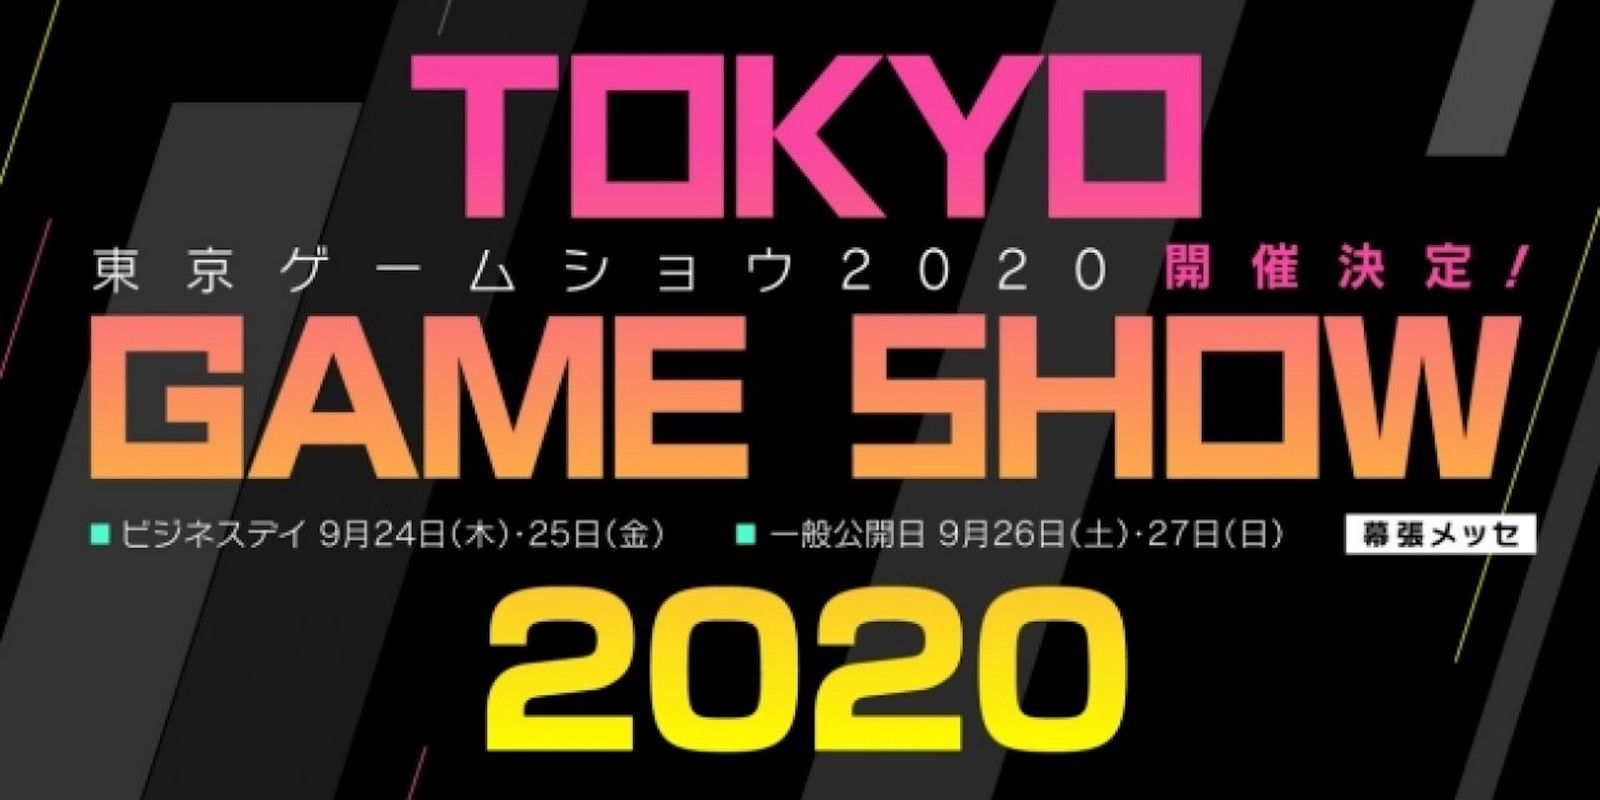 Tokyo Game Show 2020: How to Watch & What to Expect